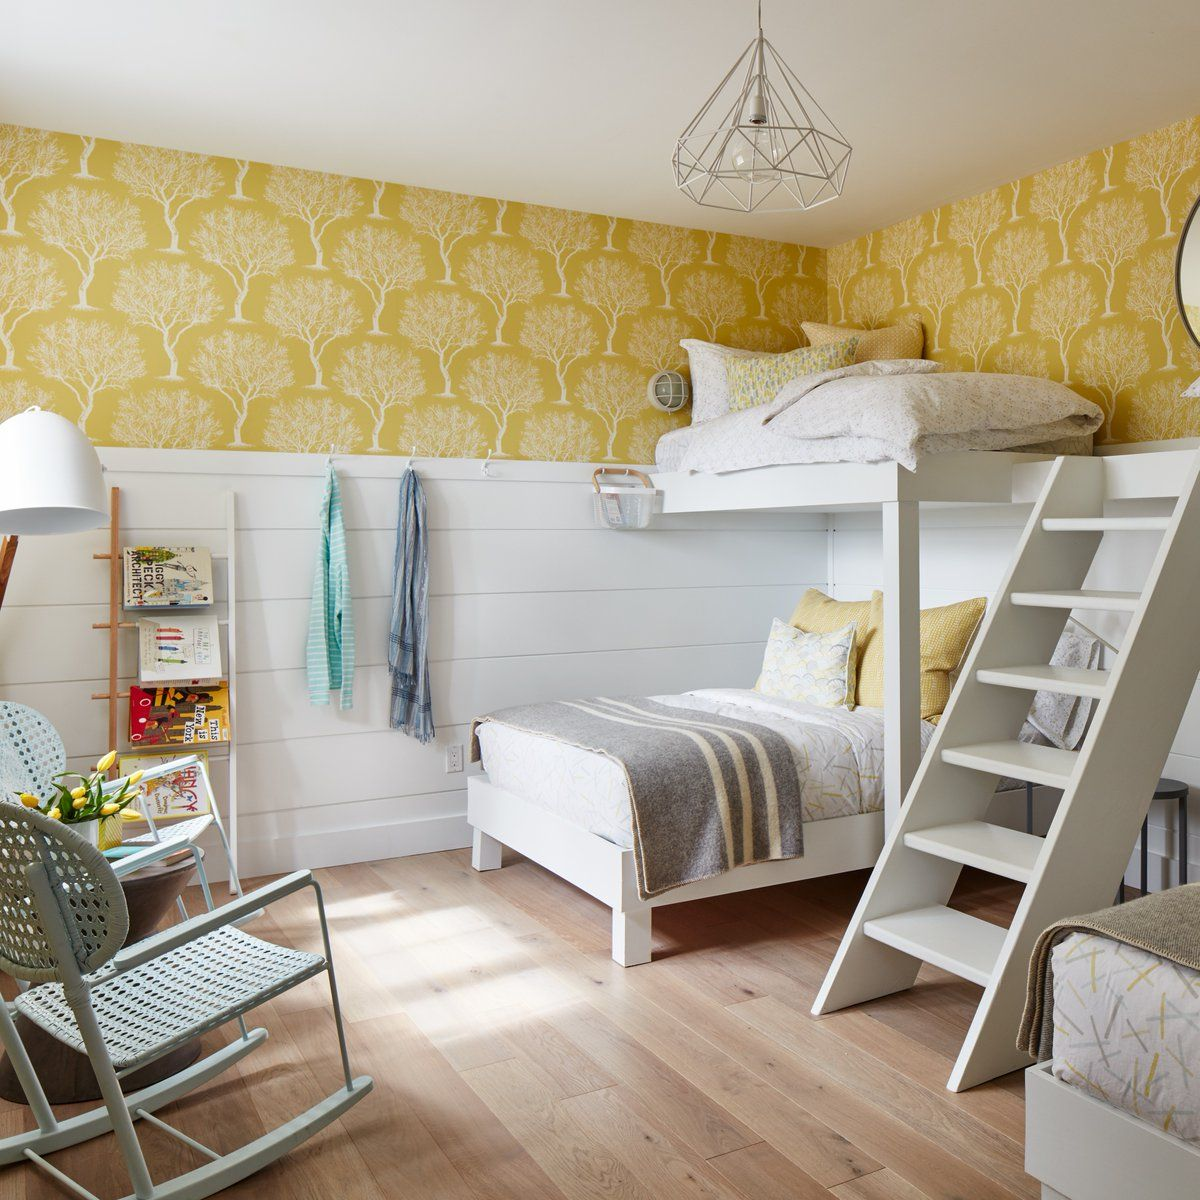 Basement bedrooms has its challenges - it can be dark and ...